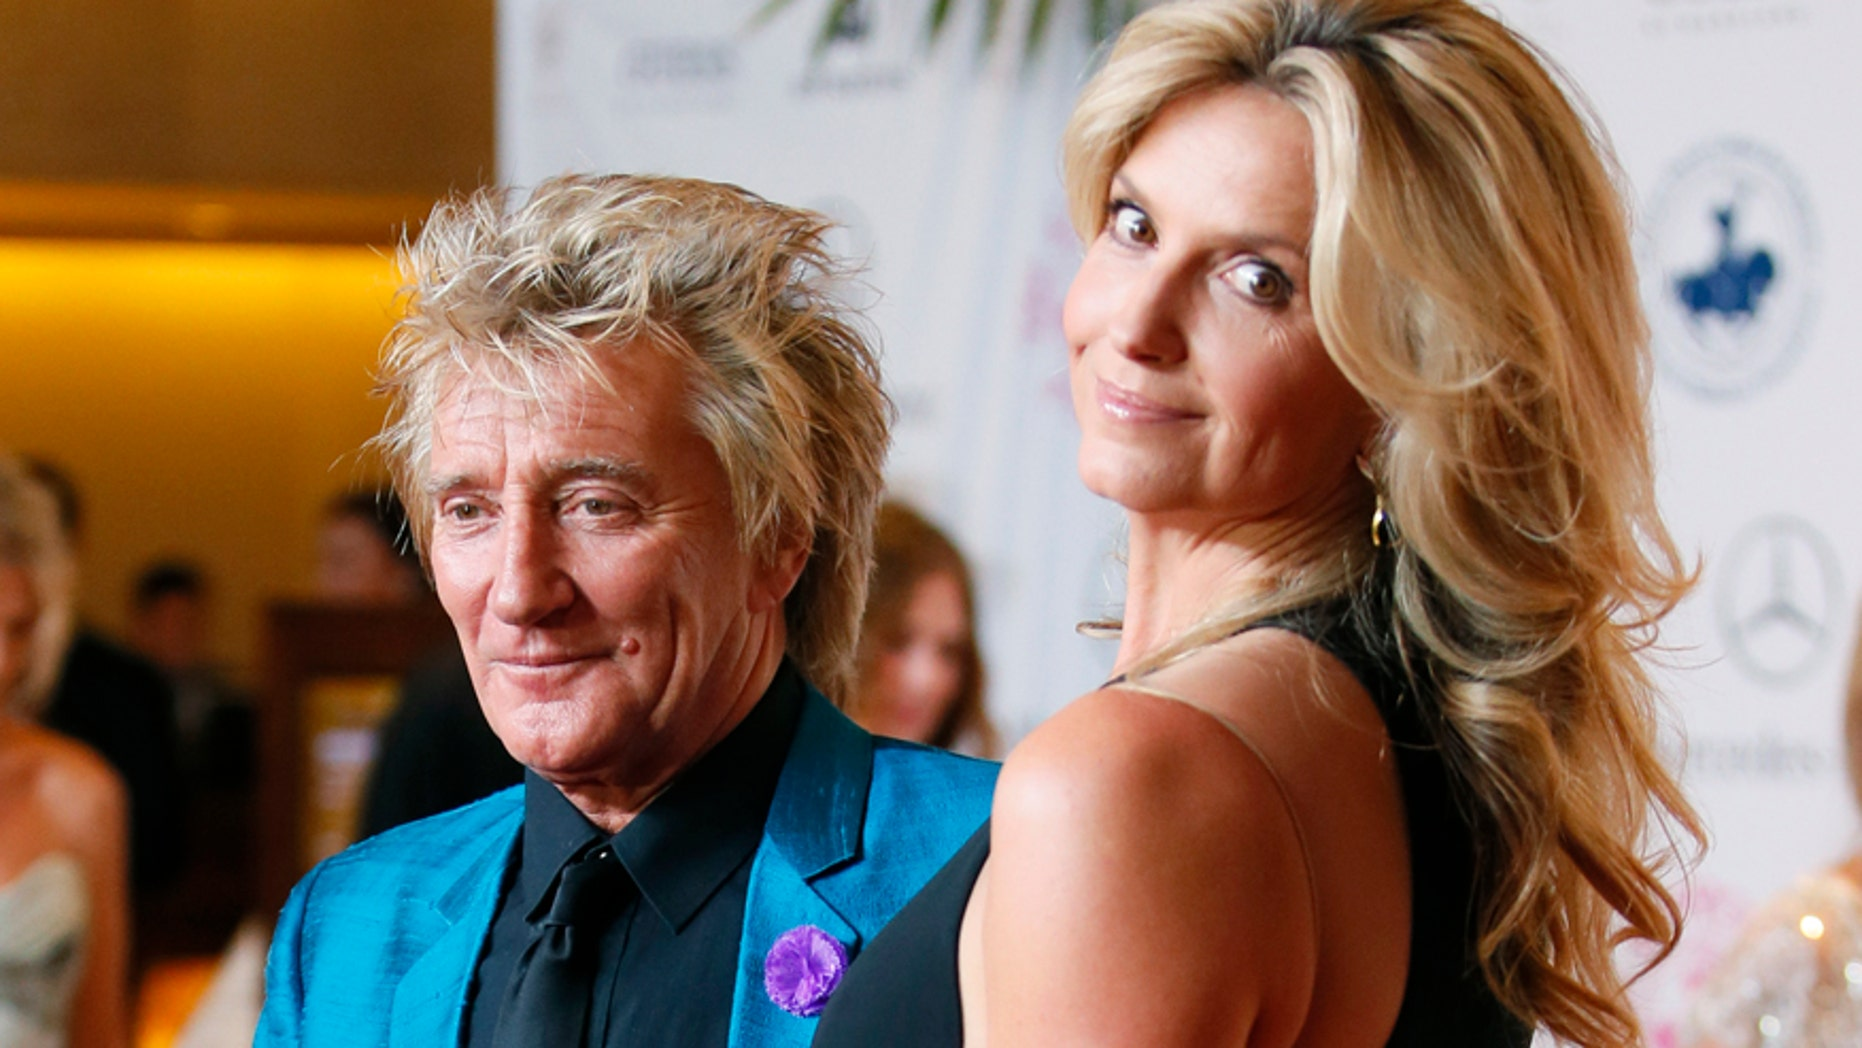 Rod Stewart and Penny Lancaster pose at The Mercedes-Benz Carousel of Hope Ball to benefit the Barbara Davis Center for Diabetes in Beverly Hills, California October 11, 2014.   REUTERS/Danny Moloshok   (UNITED STATES - Tags: ENTERTAINMENT) - RTR49TN5